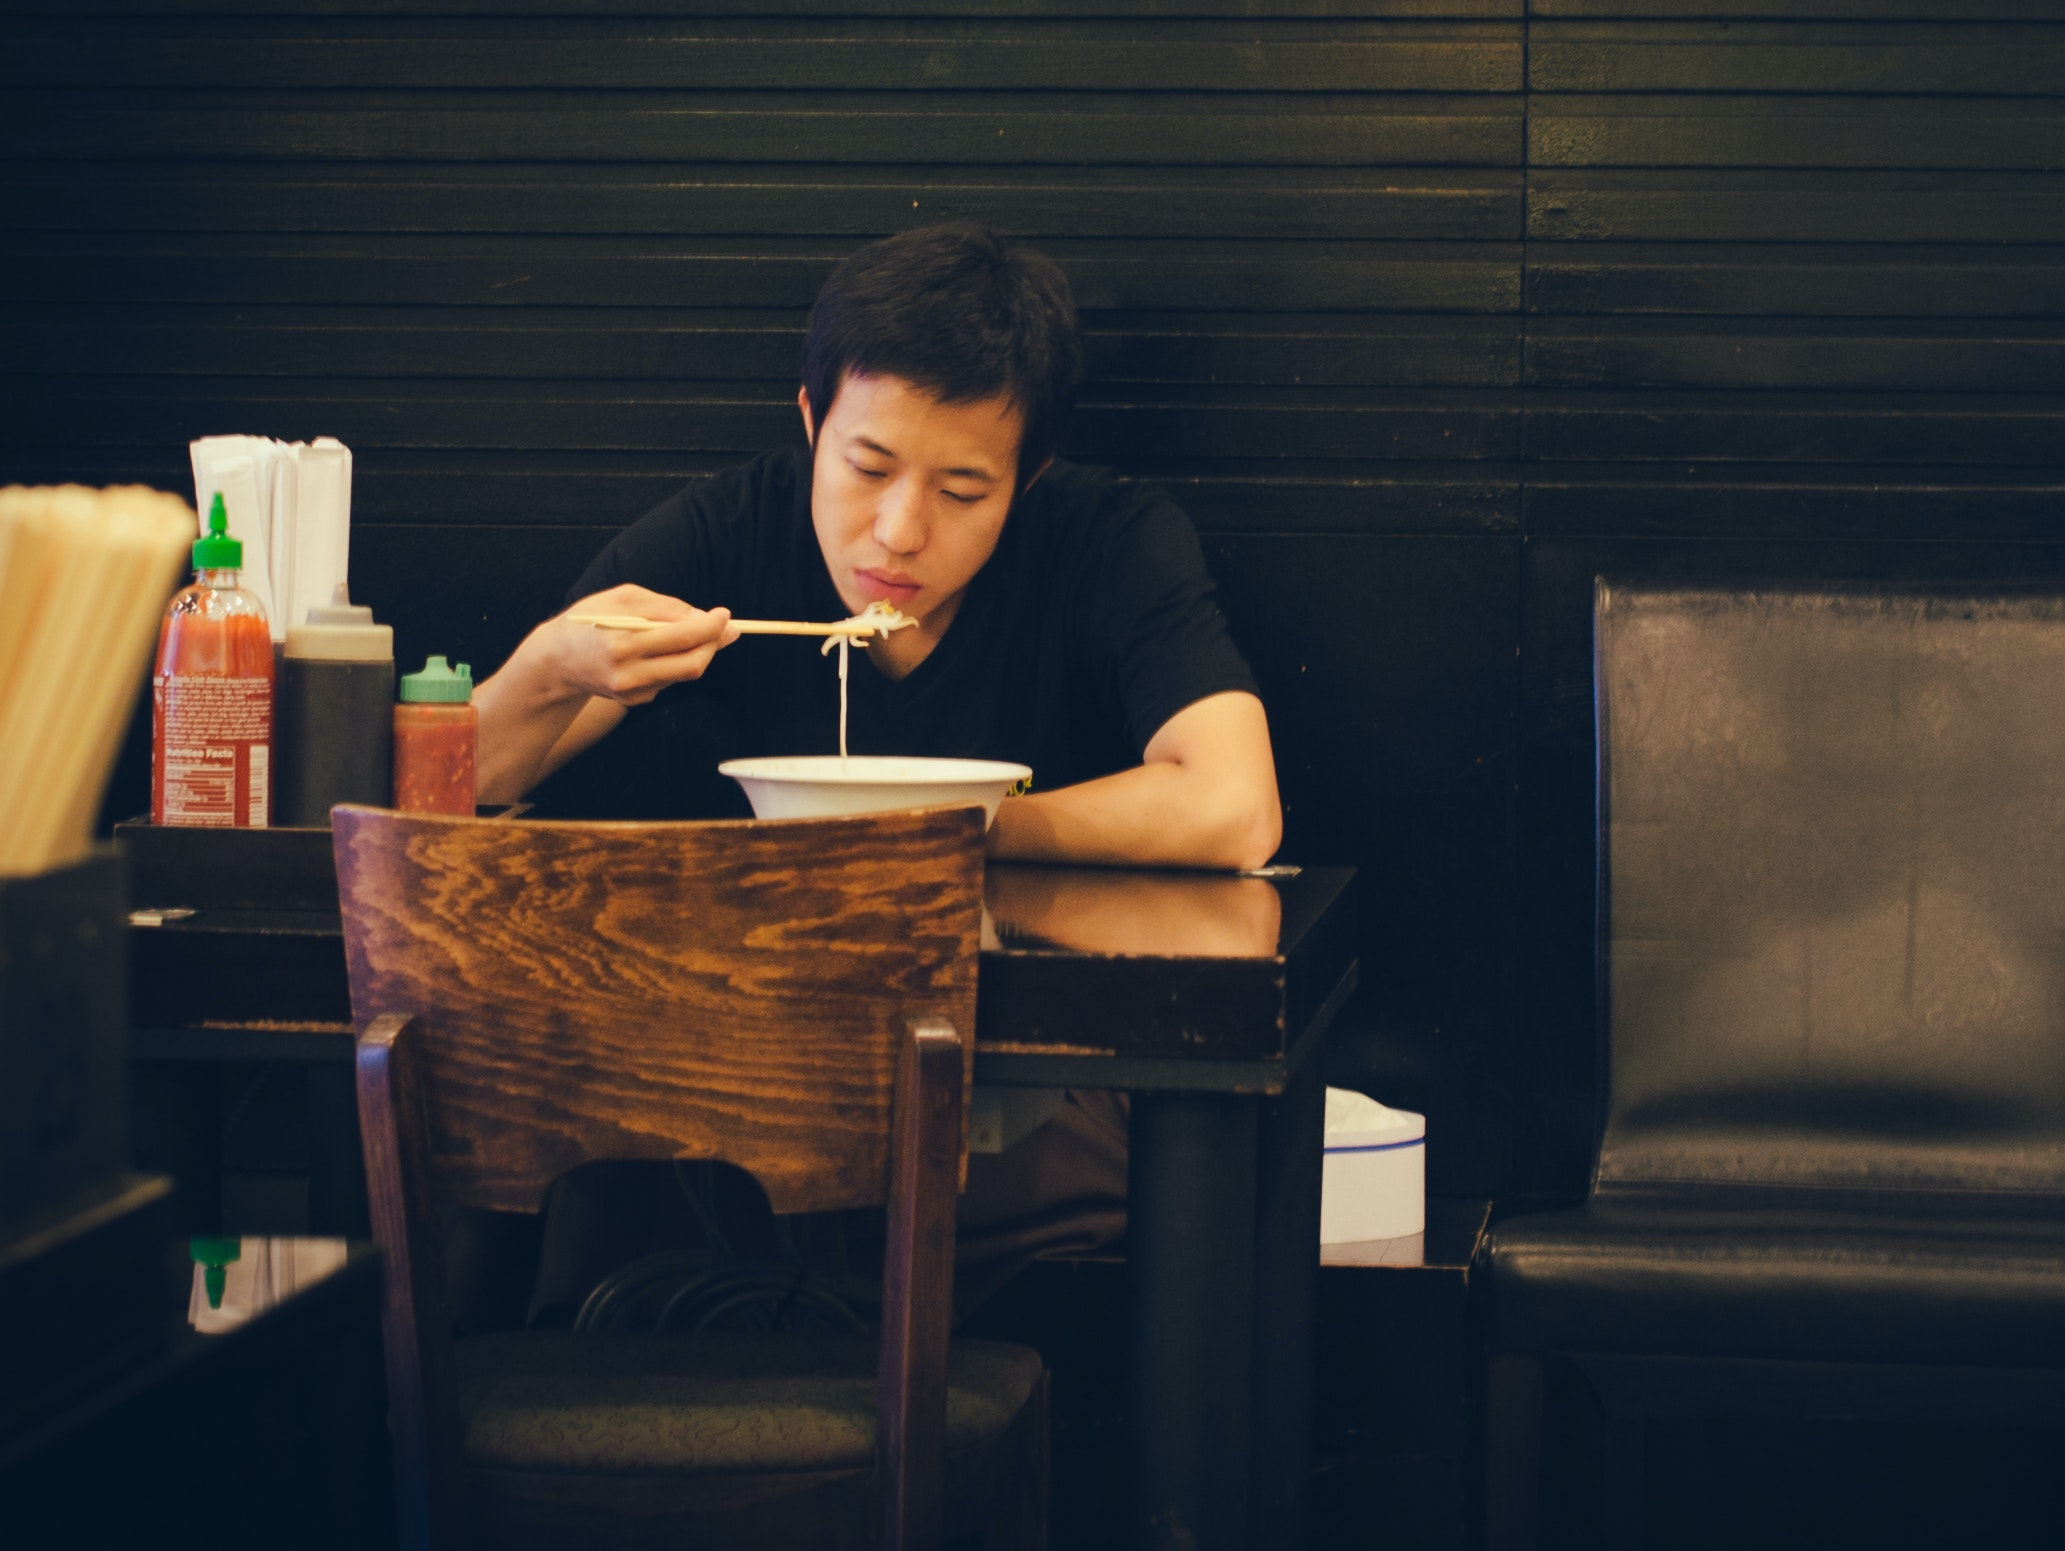 Why Eating By Yourself Isn't As Sad As It Might Seem